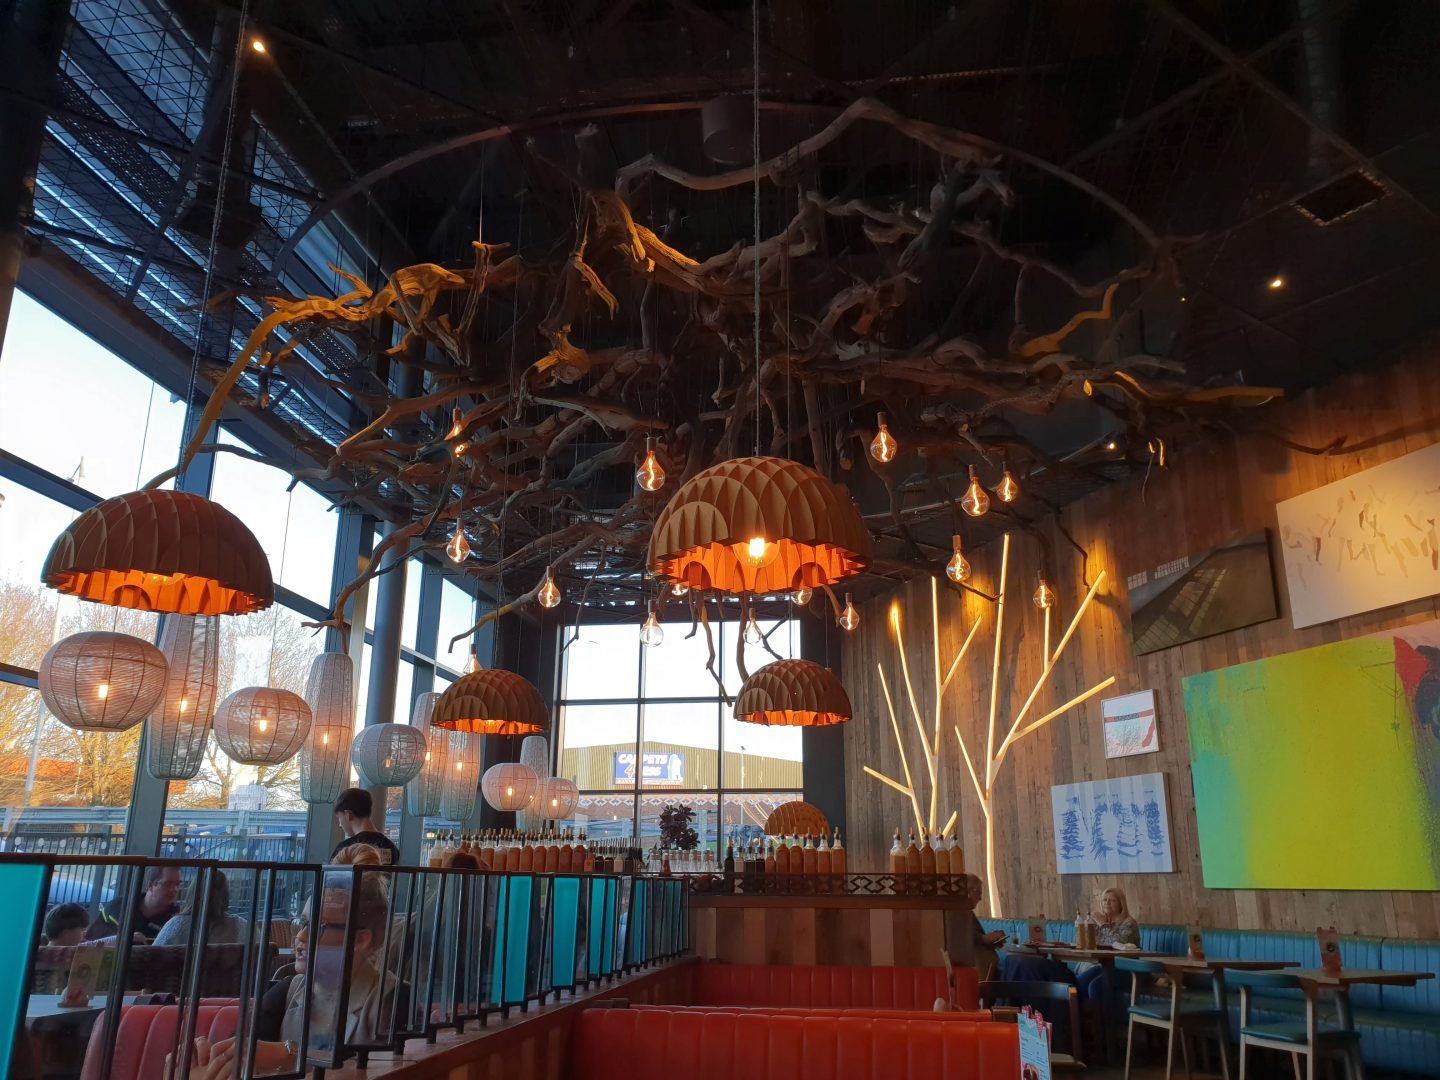 Nando's beautiful decor at South Aylesford Retail Park in Kent